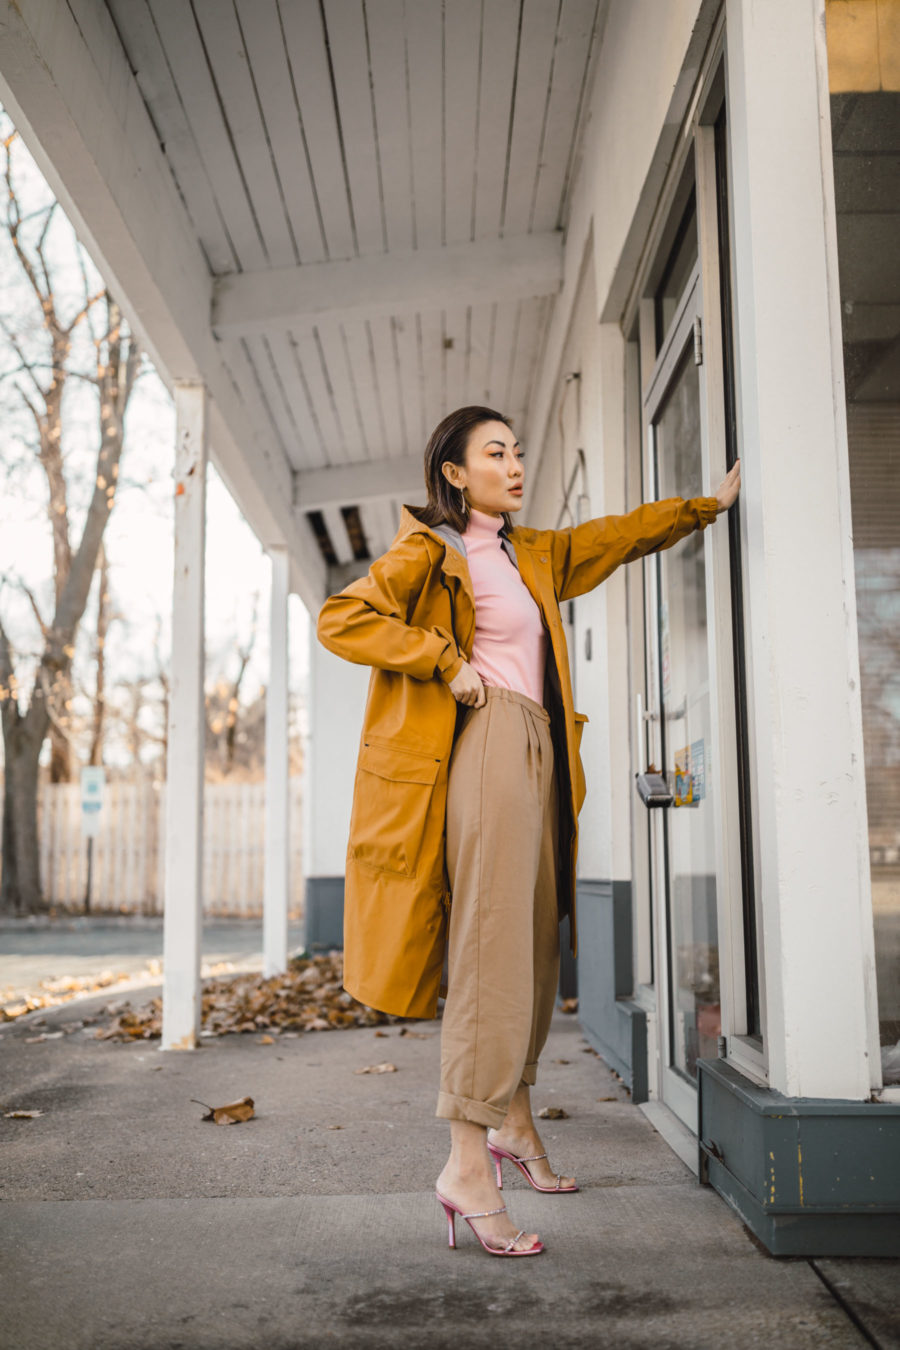 fashion blogger jessica wang wears Nike winter coat with a sleek workwear pieces // Notjessfashion.com